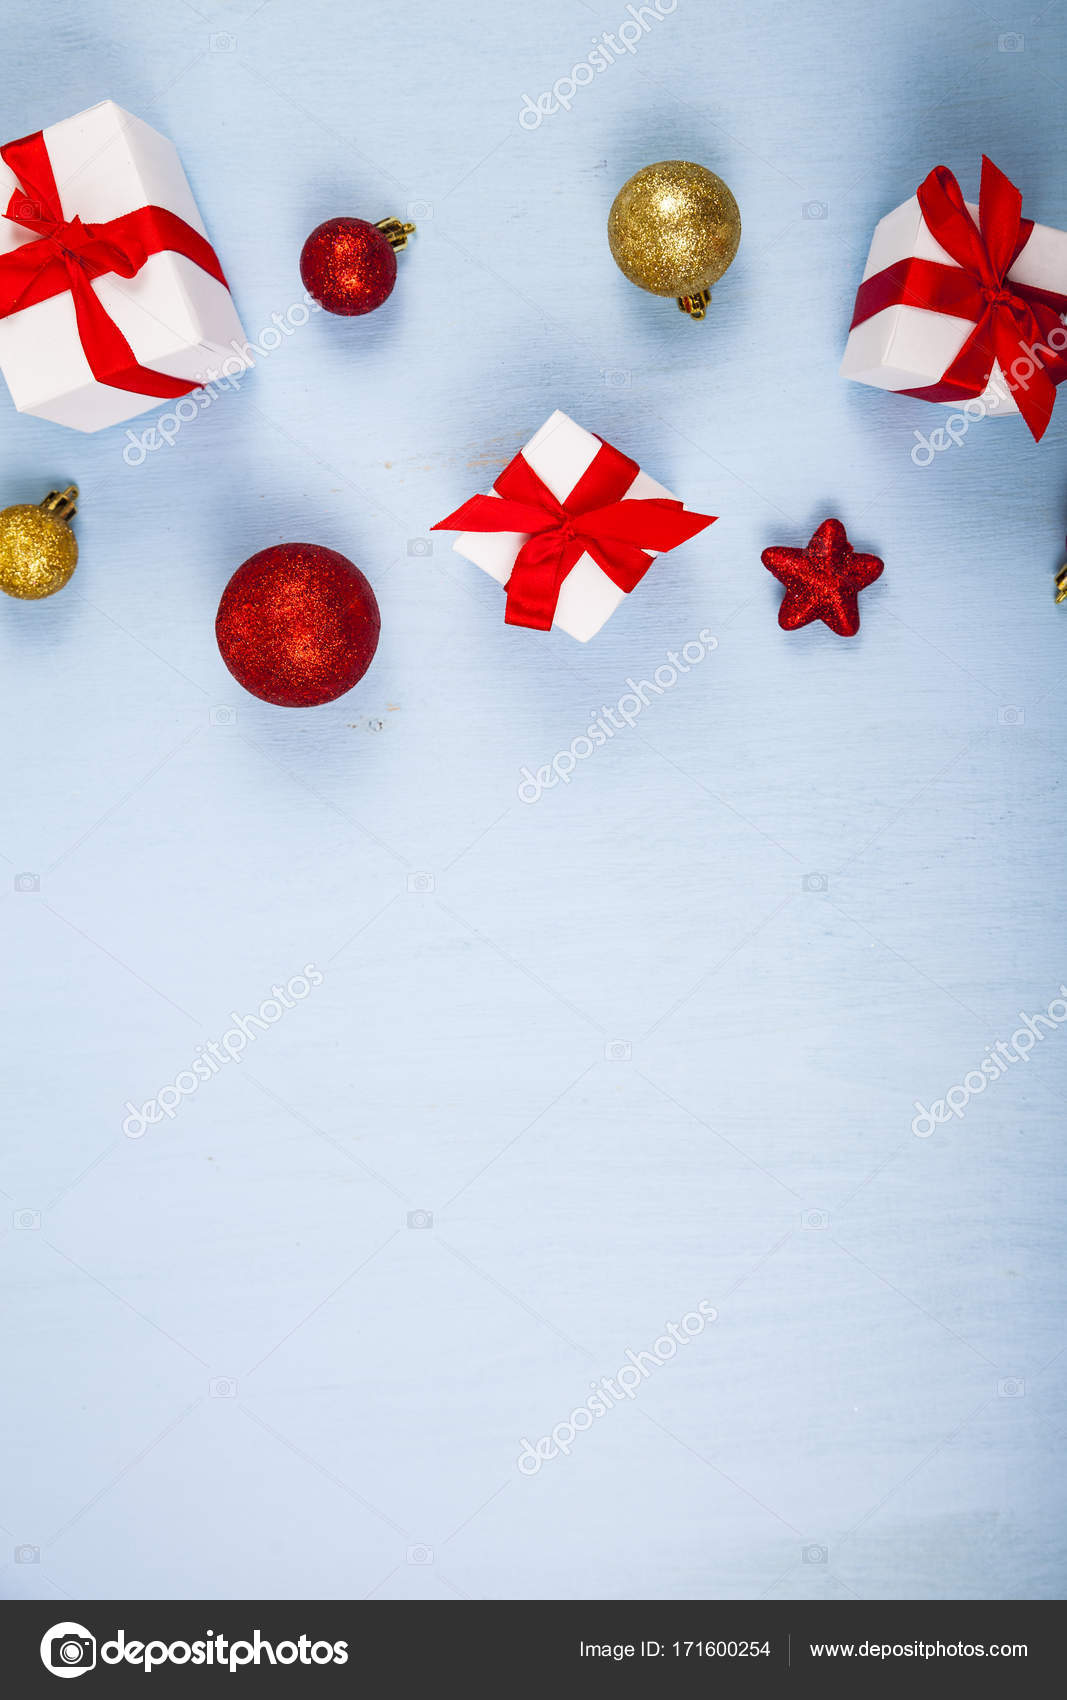 gifts with red bows and christmas decorations stock photo - Christmas Decorations Bows